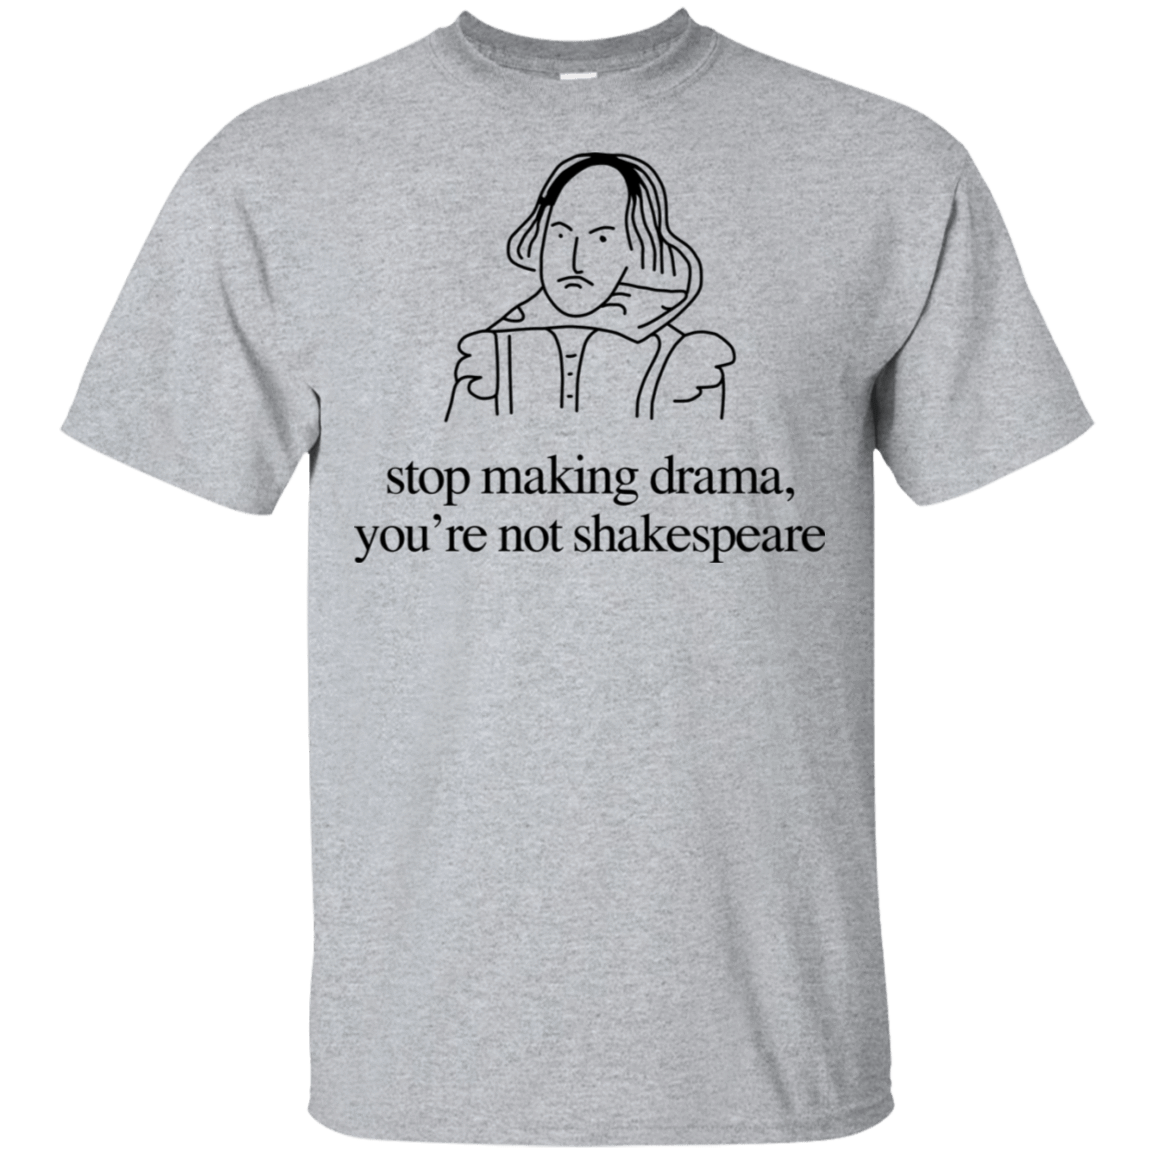 Stop Making Drama You're Not Shakespeare 22-115-72088086-254 - Tee Ript